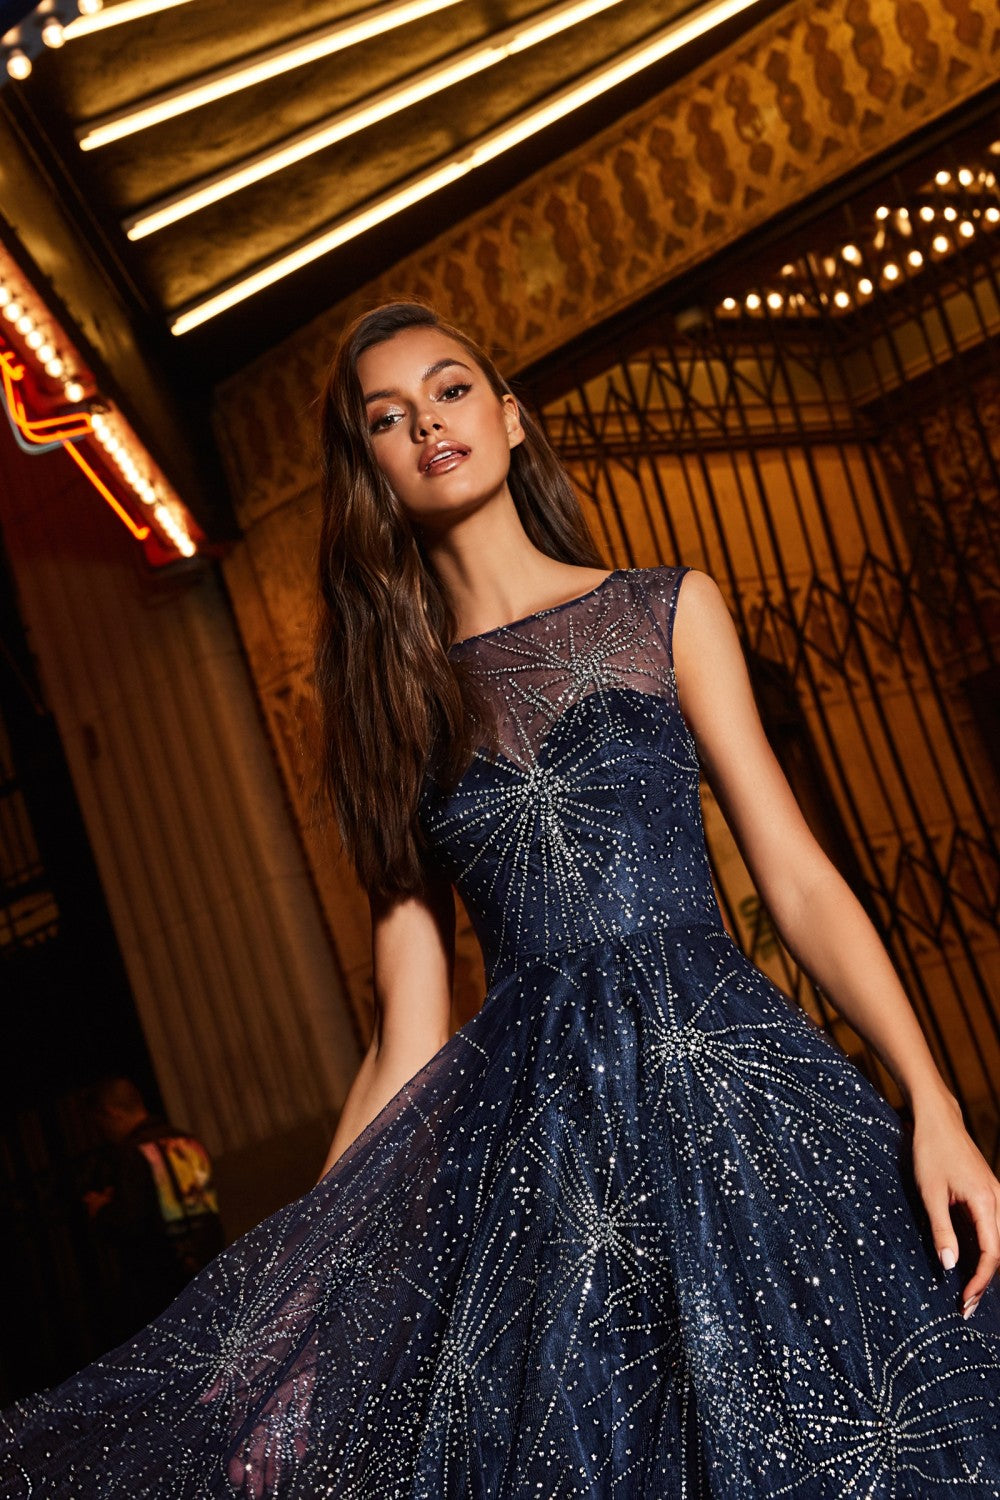 Glitter Tulle Ball Gown With High Illusion Neckline And Closed Back